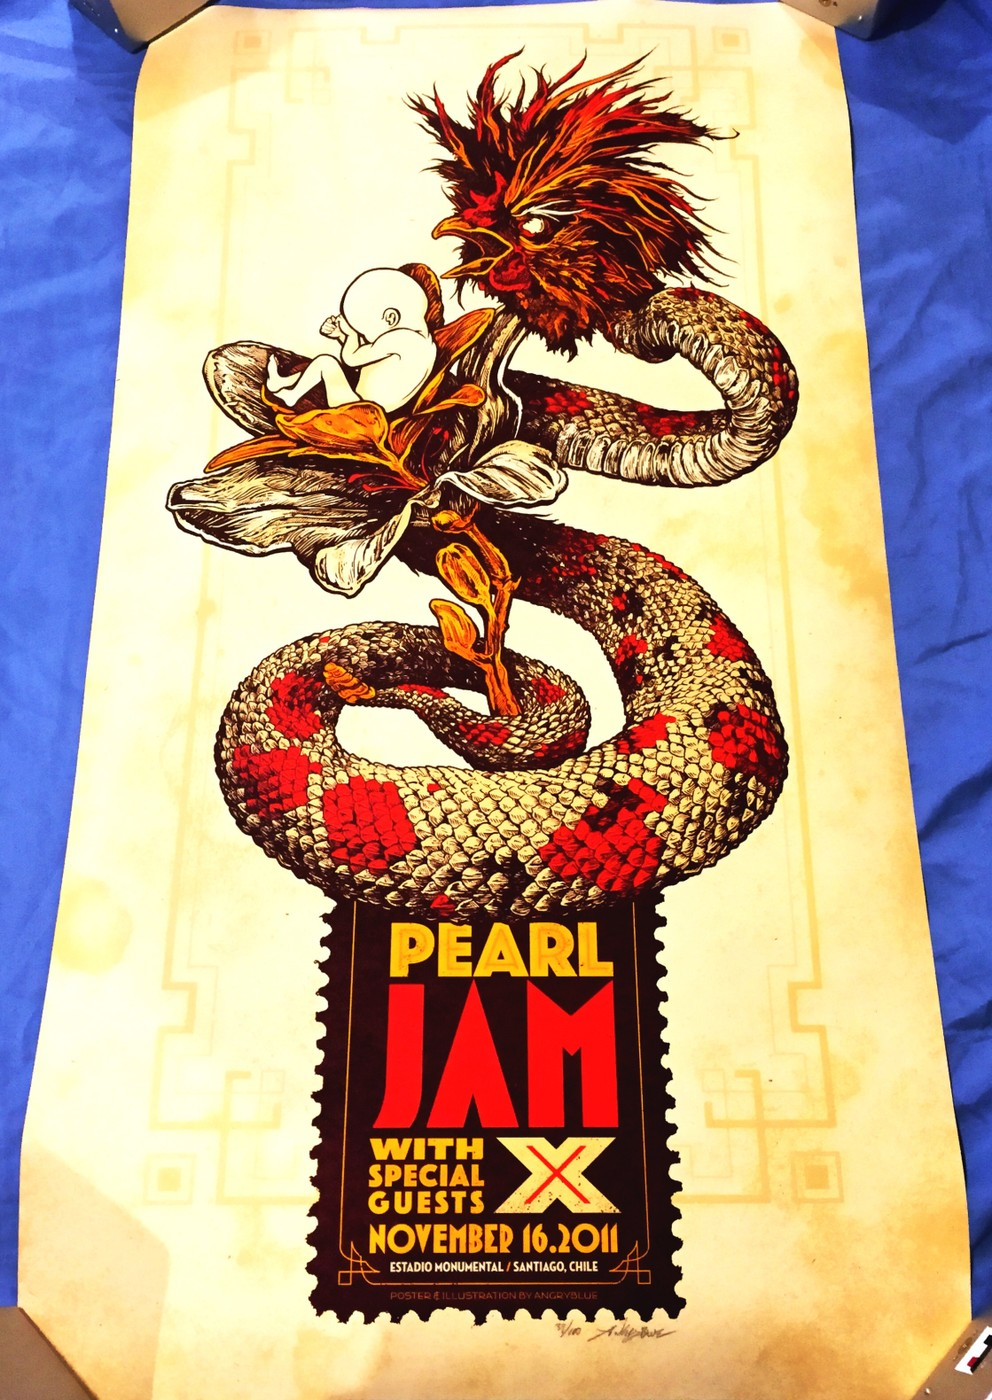 2011 PEARL JAM LIVE AT SANTIAGO, CHILE | Collectionzz